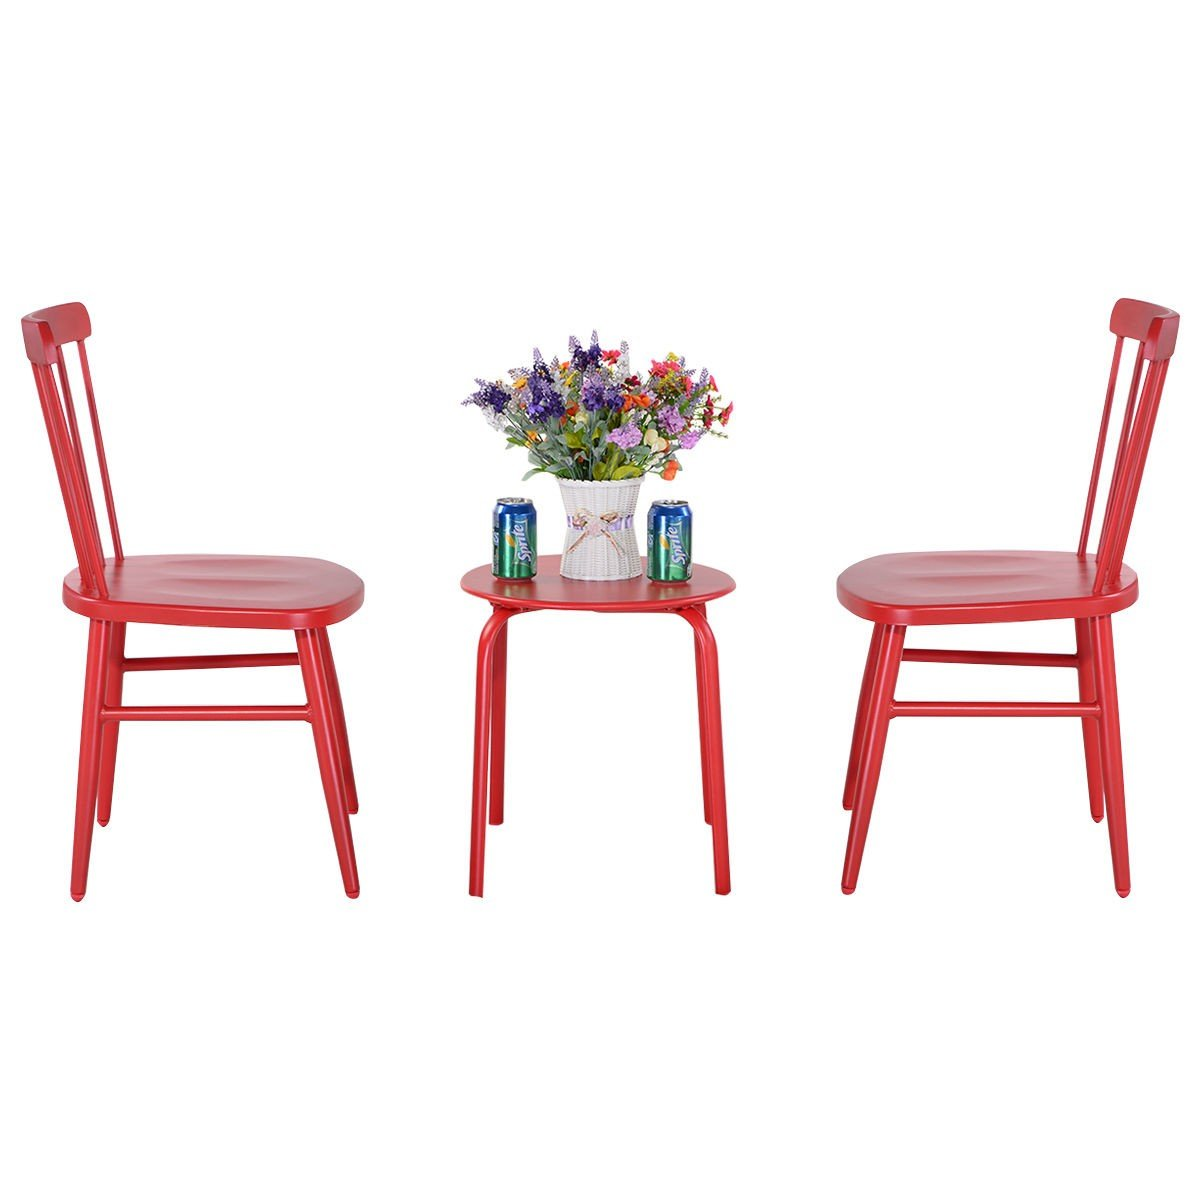 3 pcs Bistro Steel Table and Chair - Red + FREE E-Book